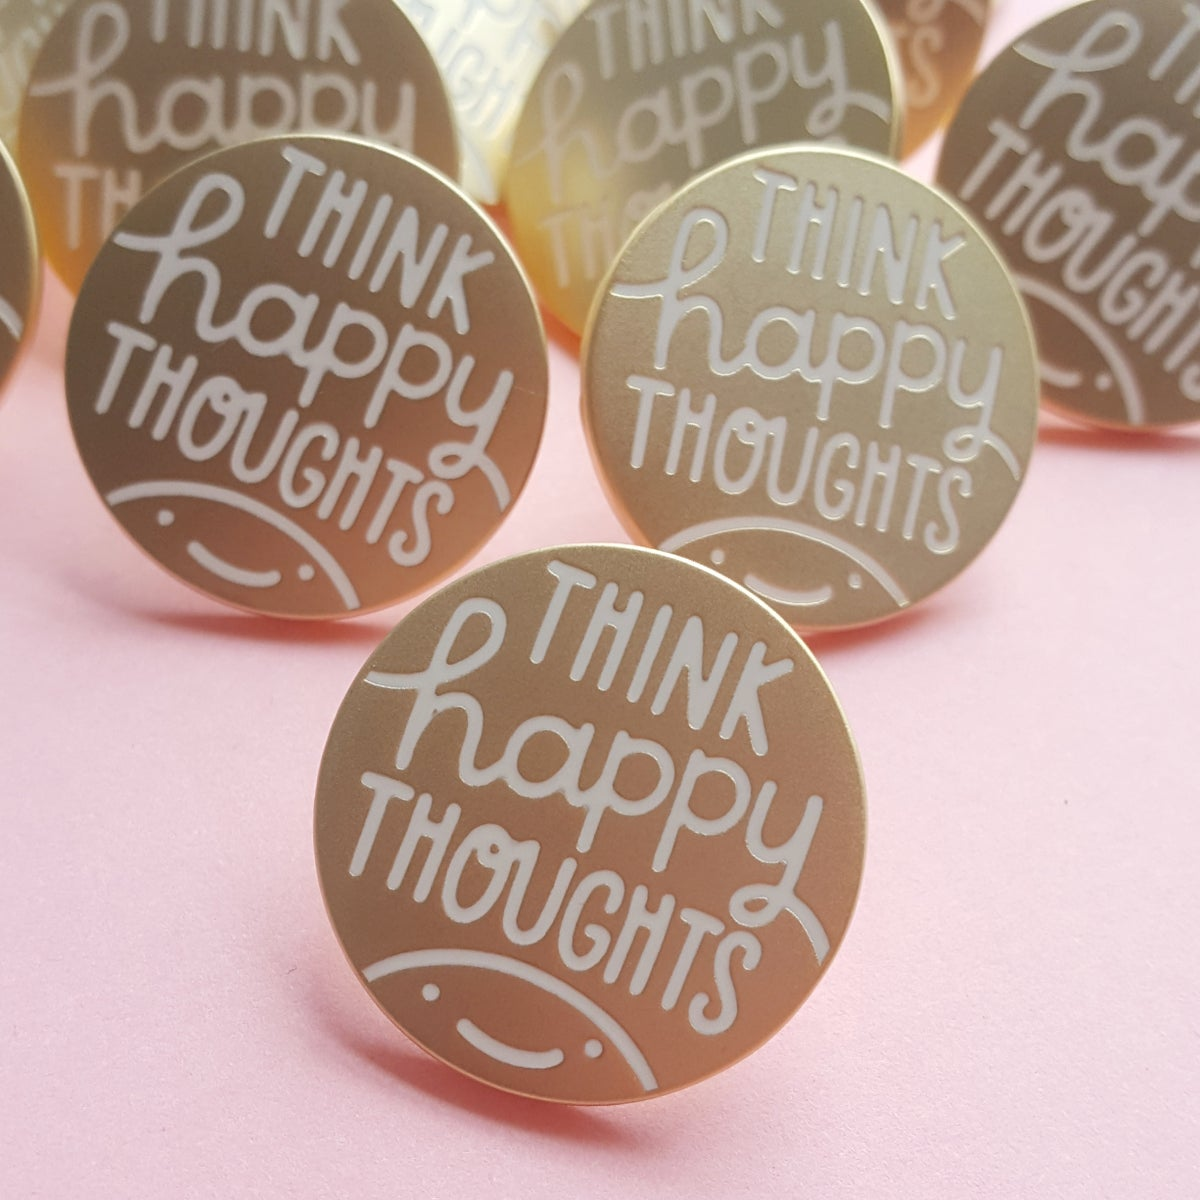 Think Happy Thoughts - Matte Gold Hard Enamel Pin